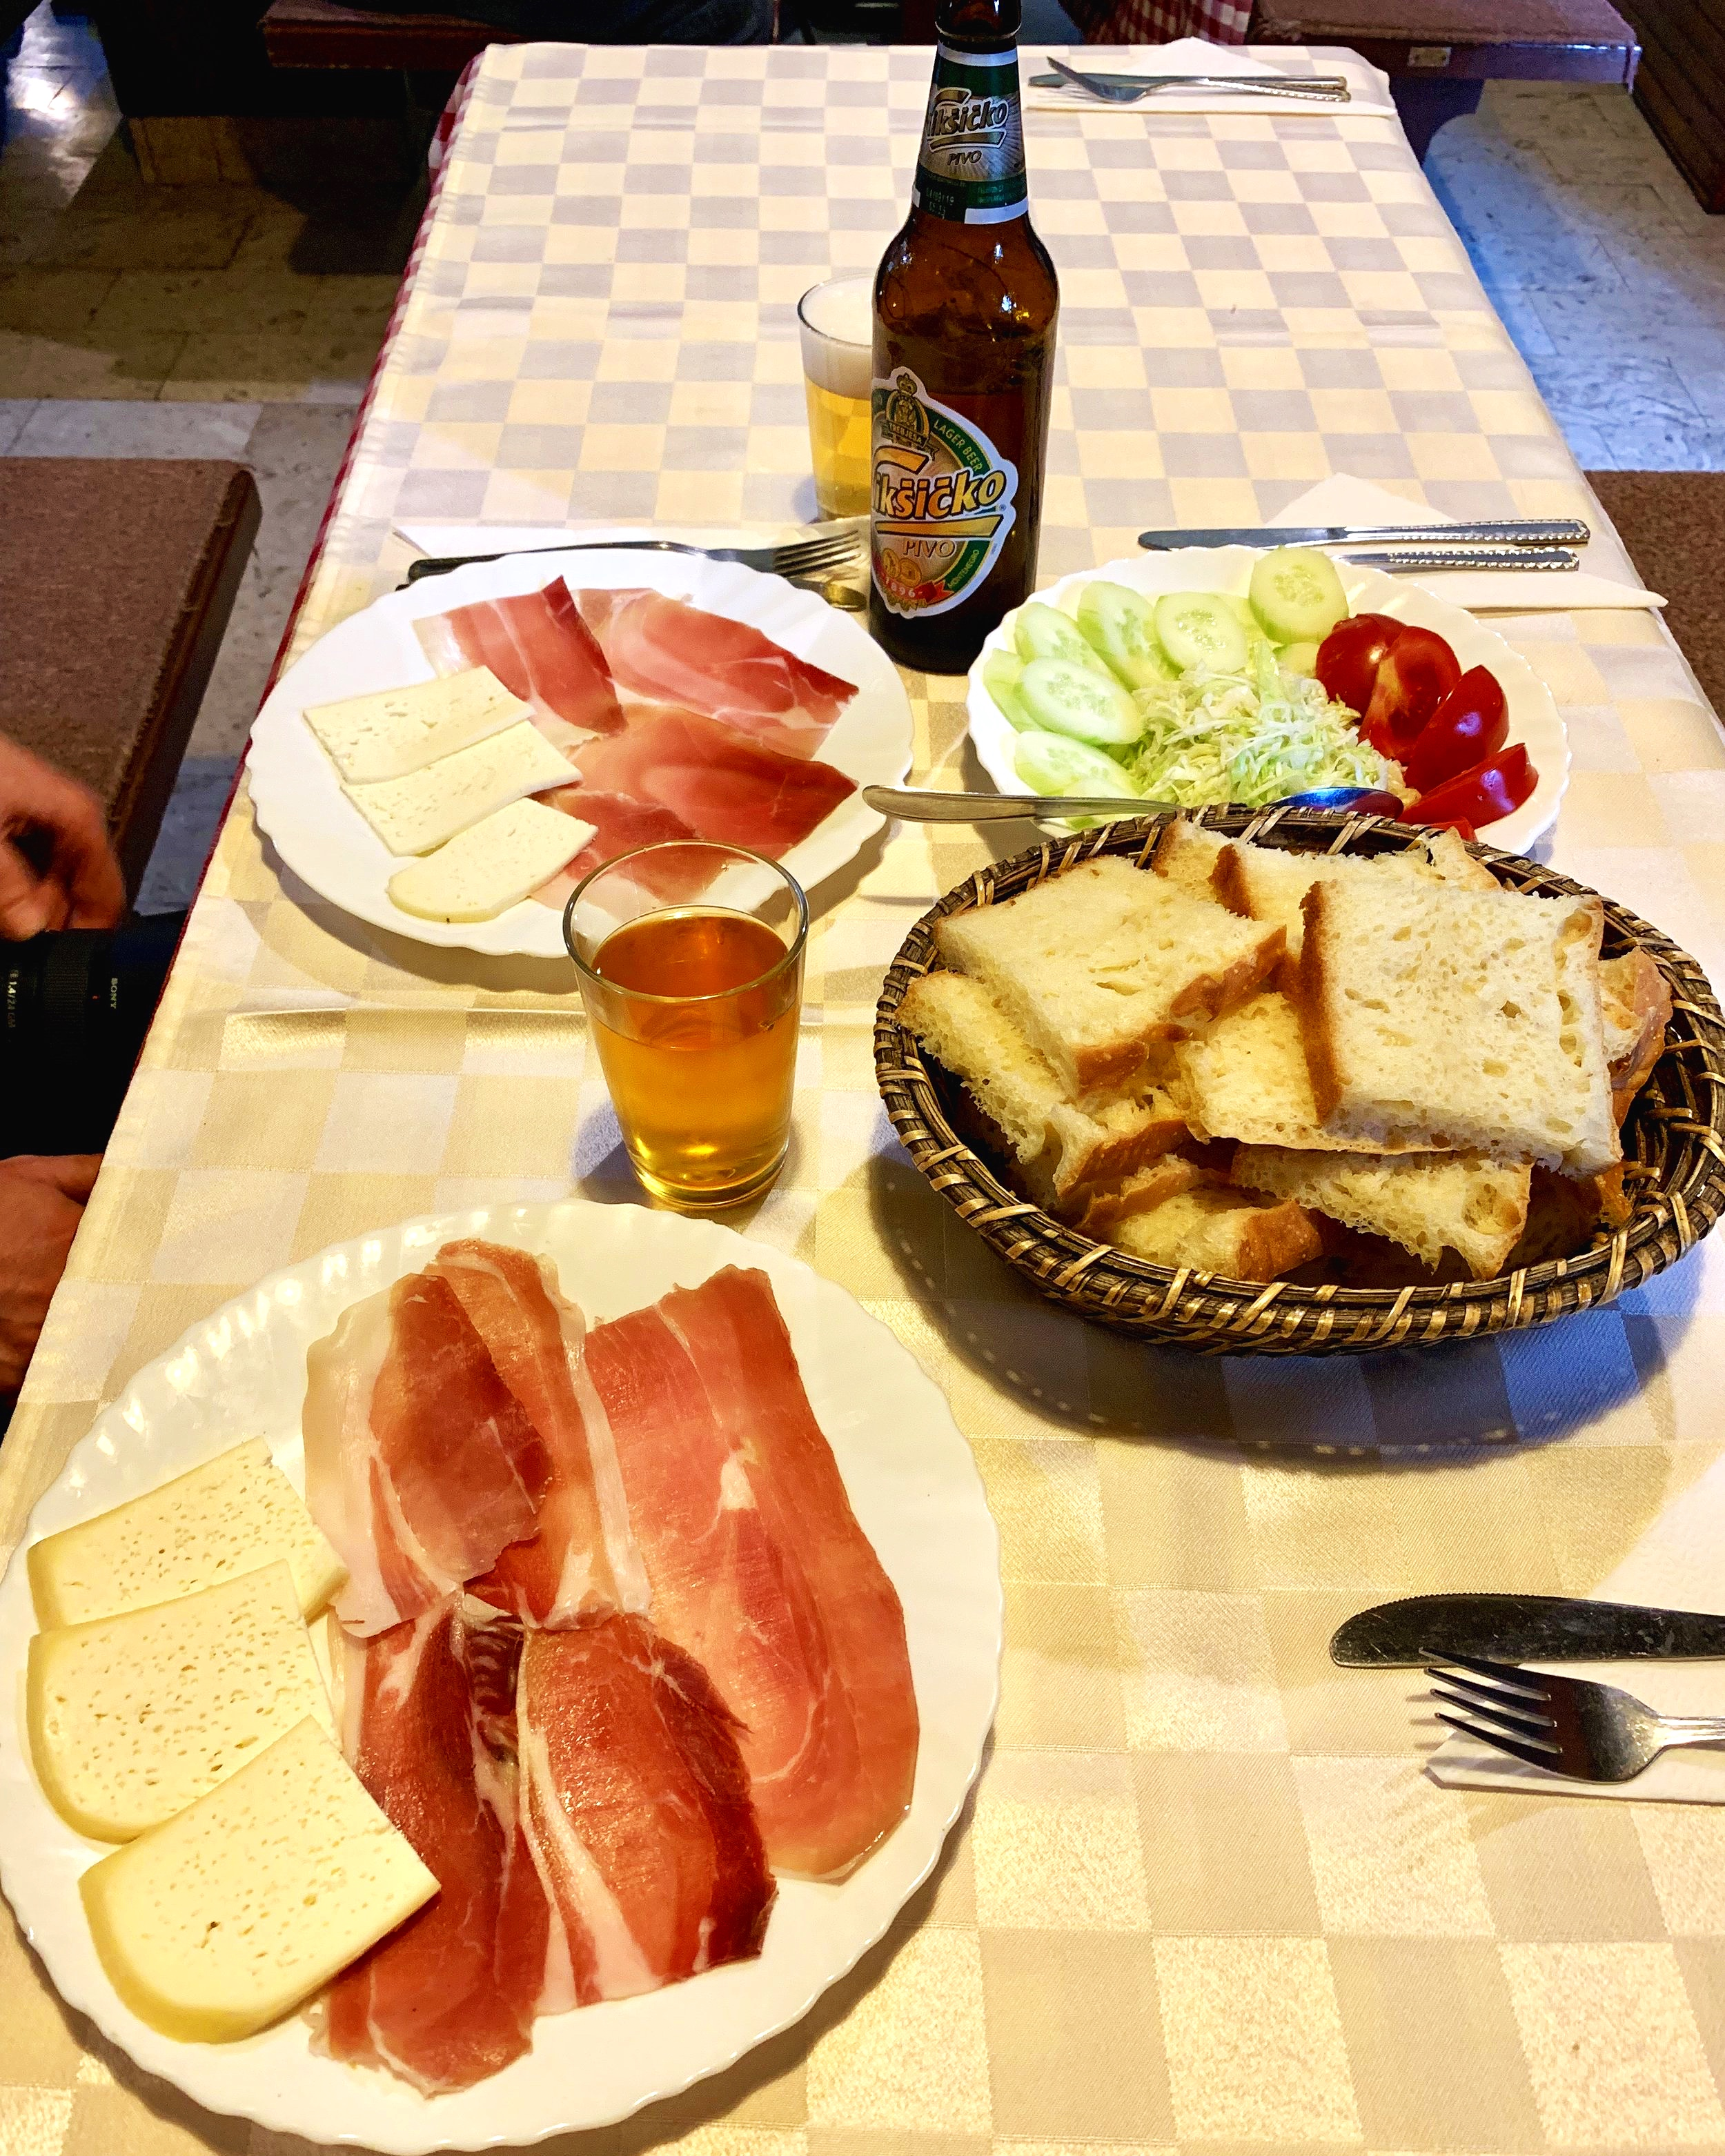 Local prosciutto, goats cheese, honey wine and beer.